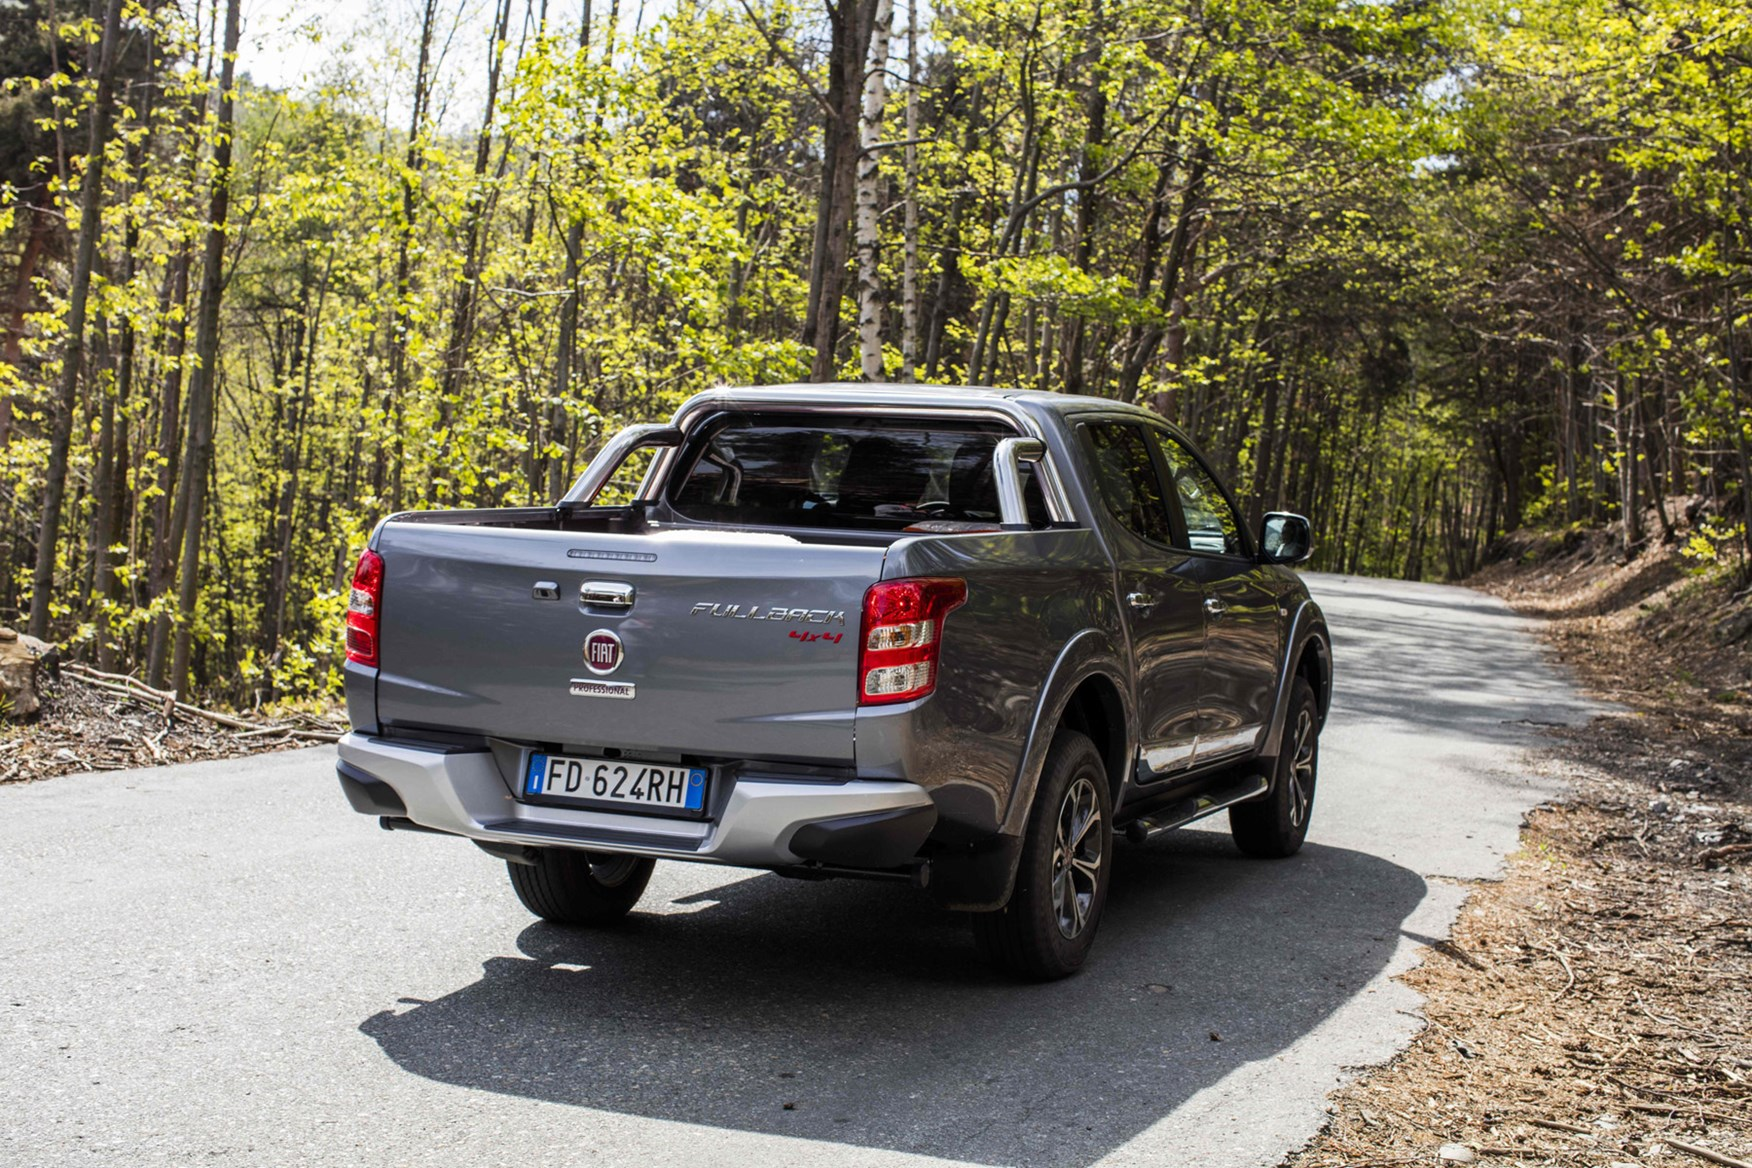 Fiat Fullback full review on Parkers Vans - rear